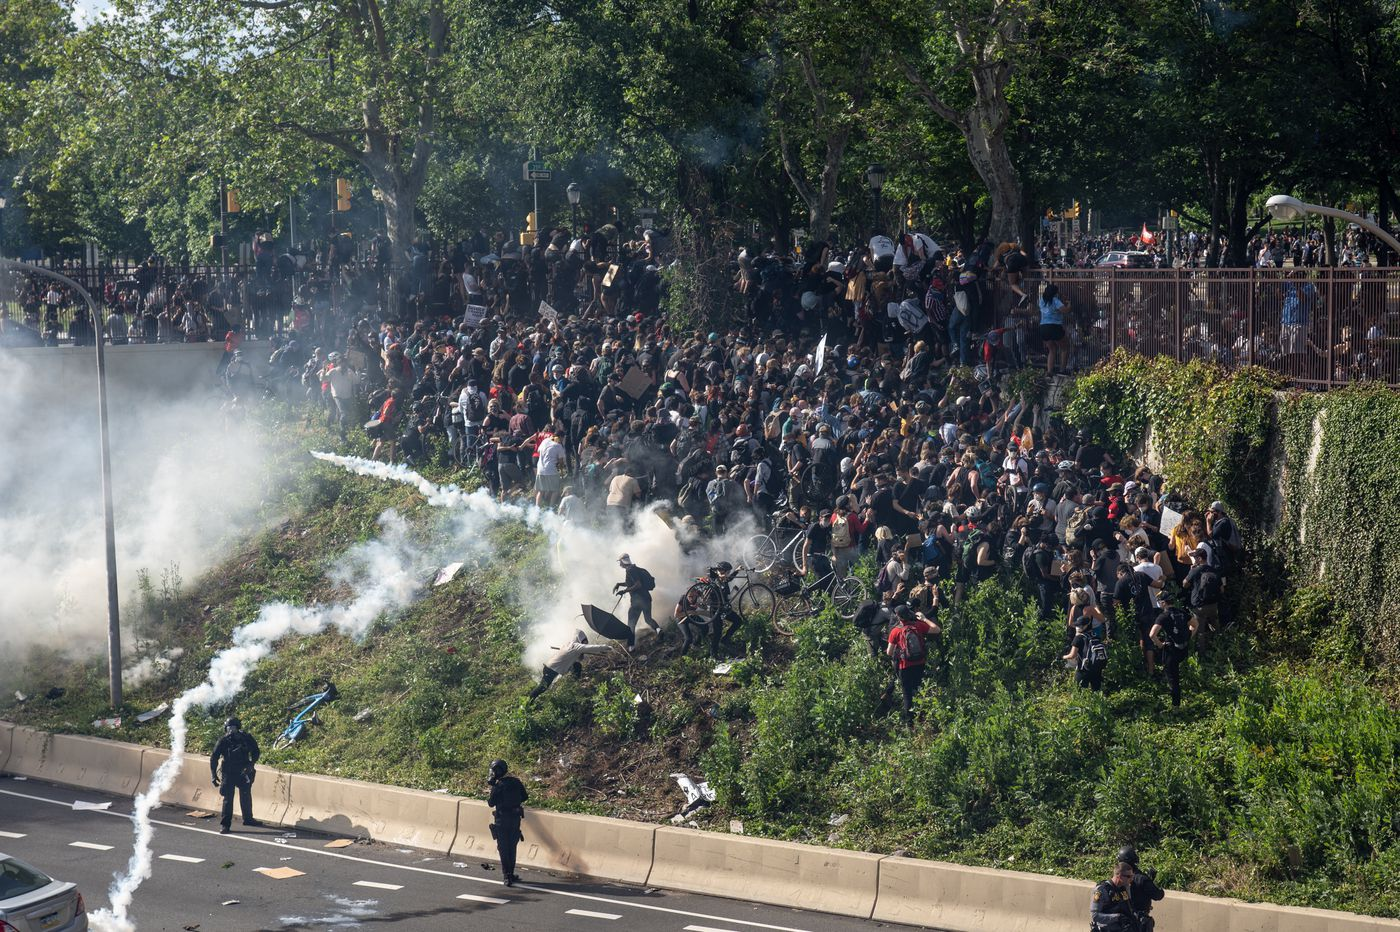 Using tear gas against protesters during an infectious outbreak is 'a recipe for disaster'